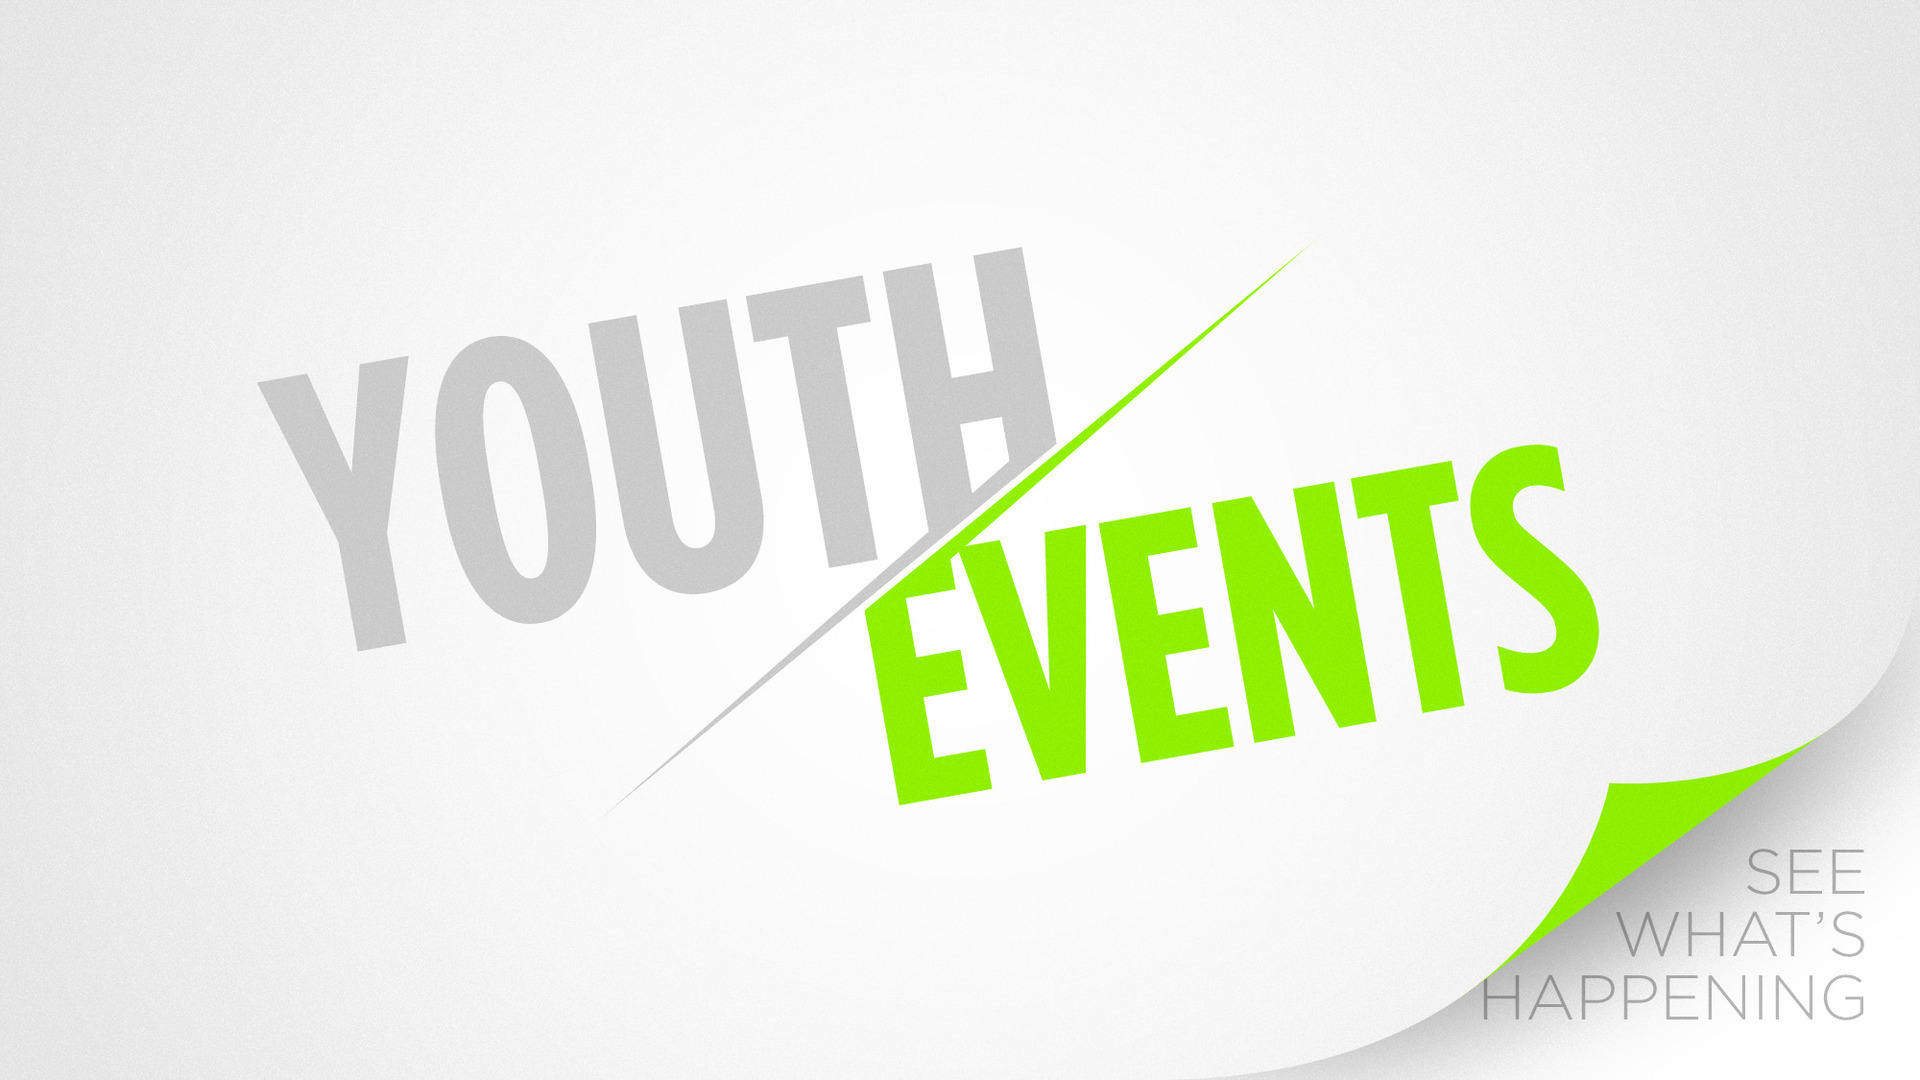 youth_events-title-1-still-16x9.jpg